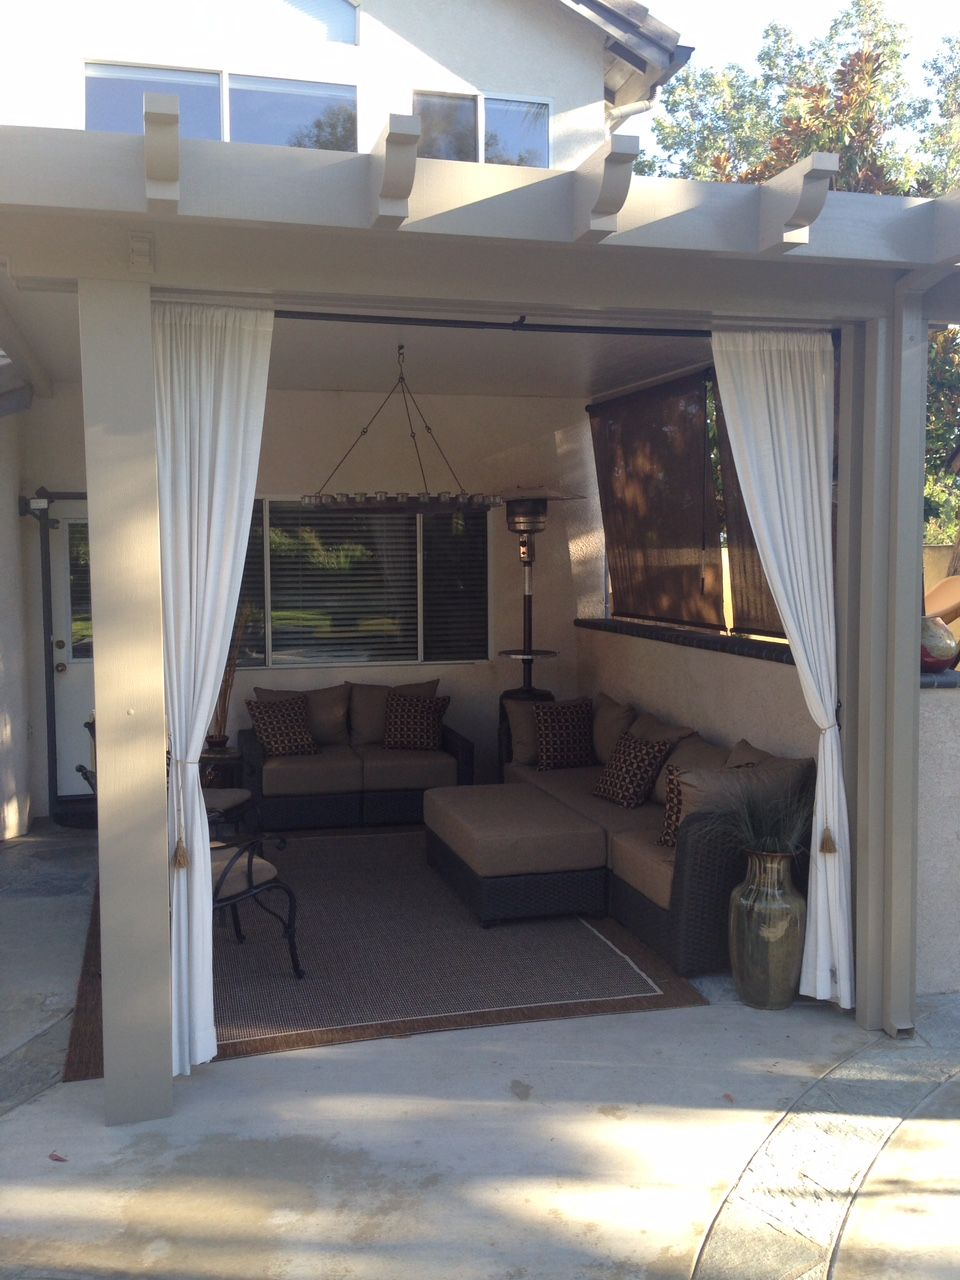 Outdoor living space with alumawood patio cover I Greenbee ... on Living Spaces Patio Set id=58152